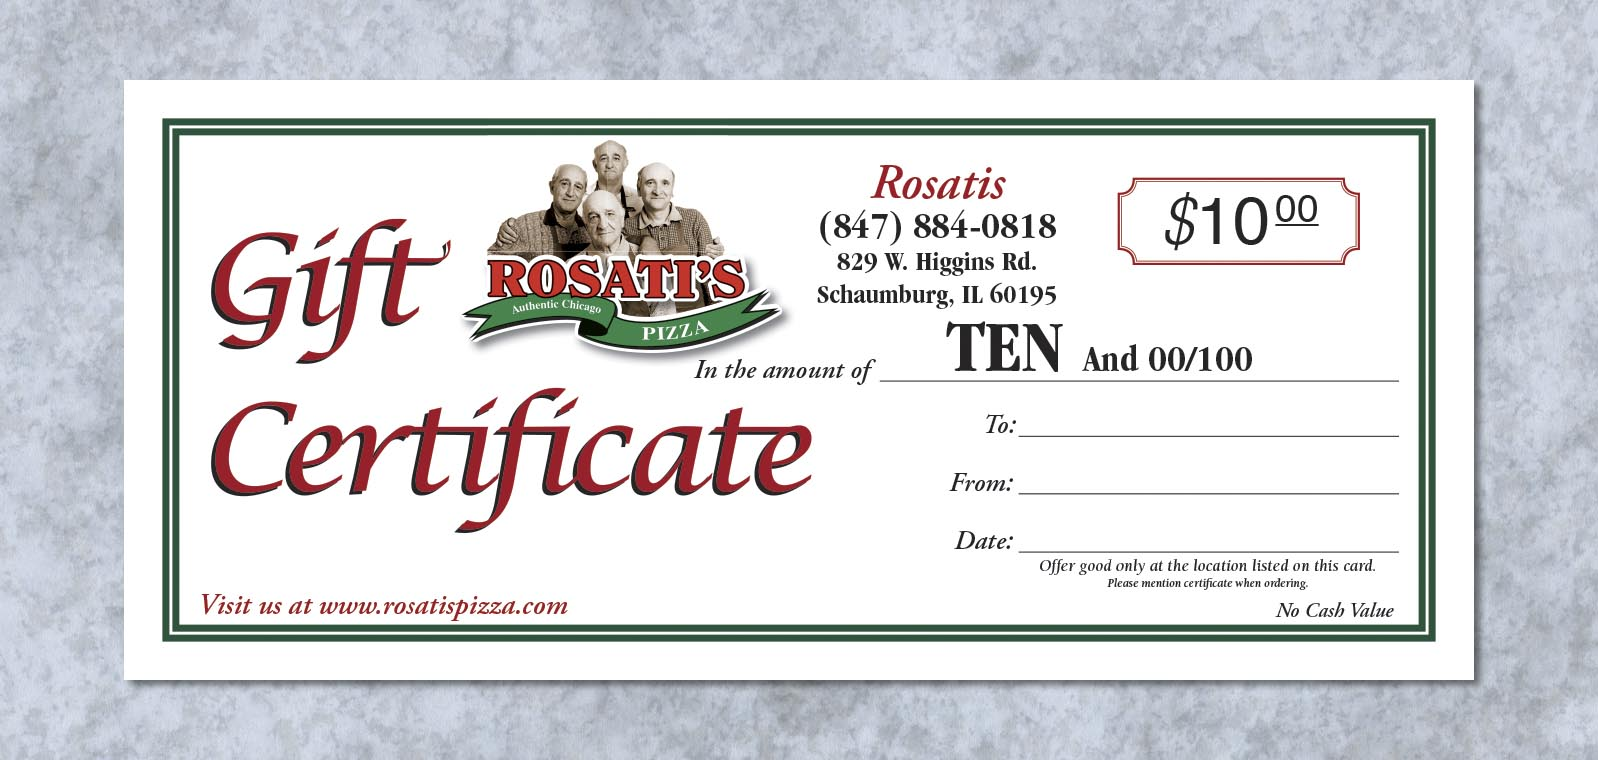 Gift Certificate Design from Roselle Graphic Designer Controlled Color, Inc.